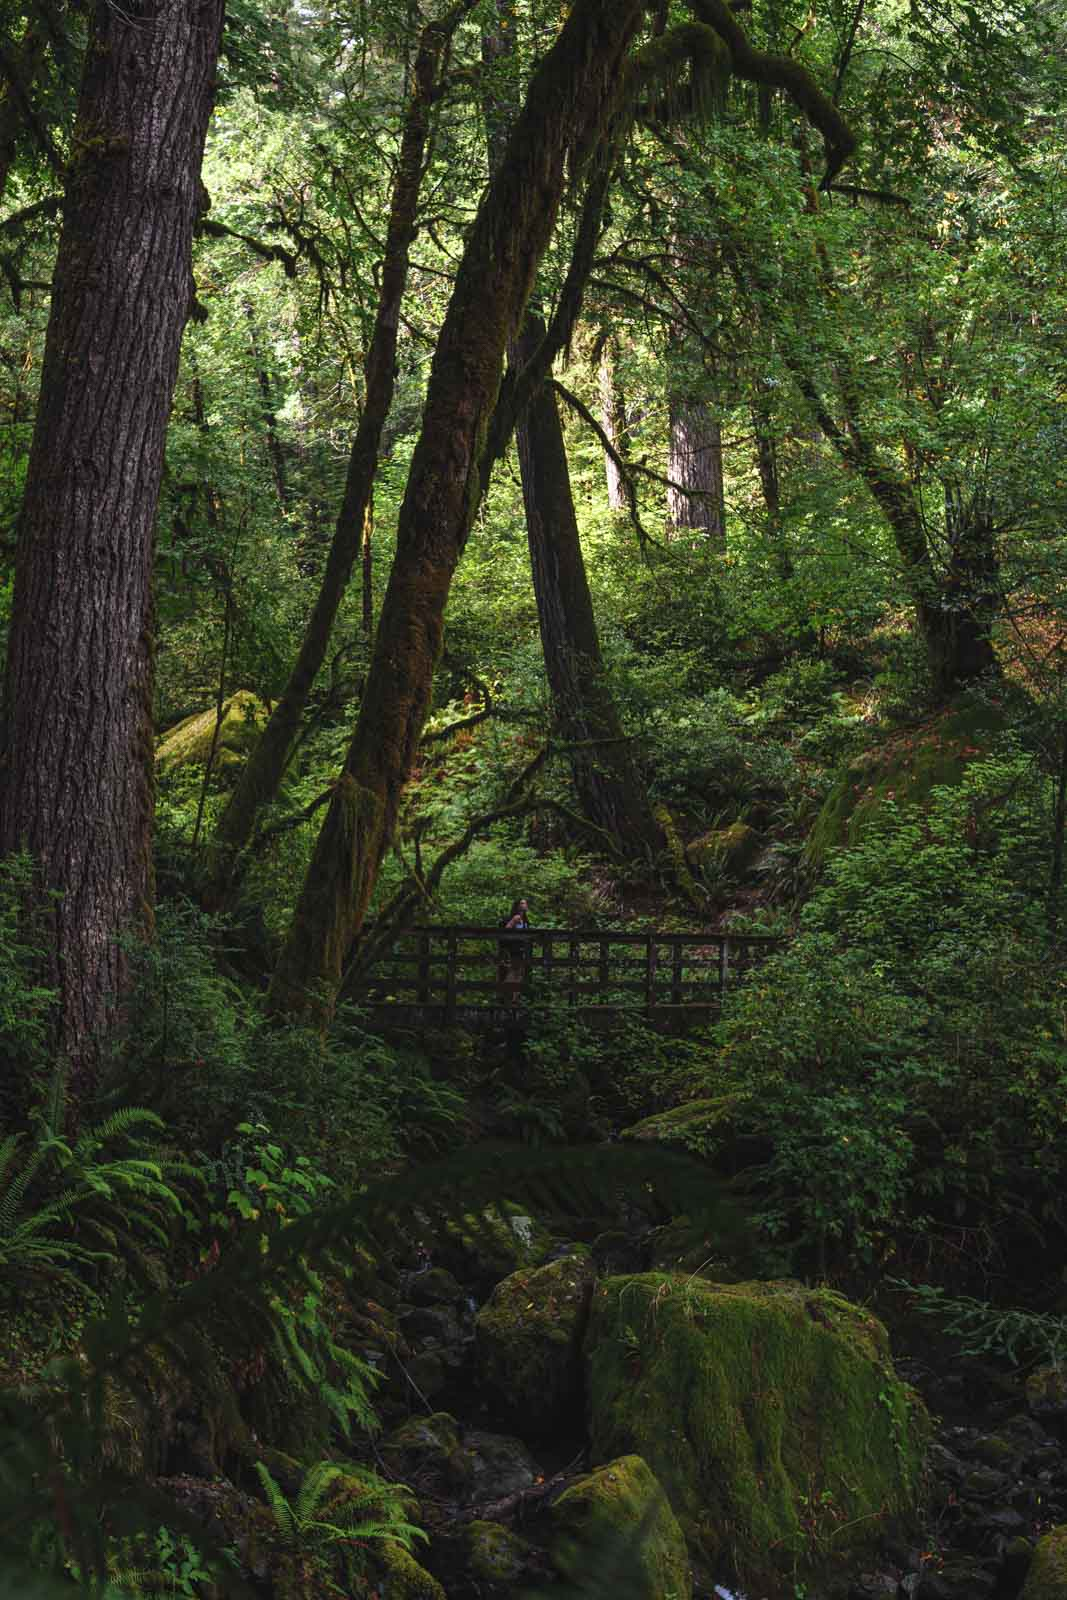 Hiking trail in the forest at Alfred A. Loeb - Oregon Coast State Parks